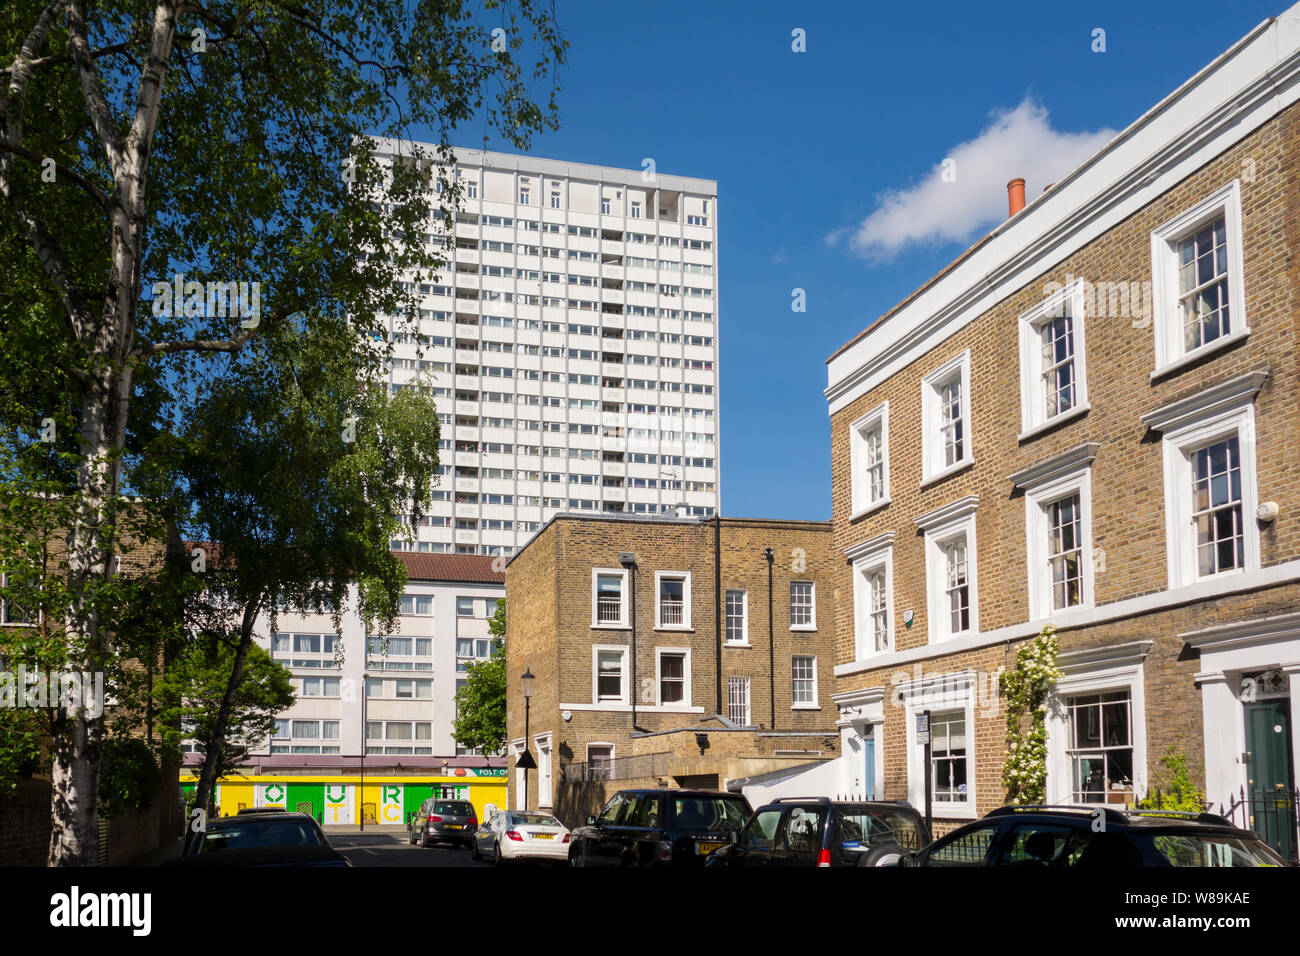 Tower block overlooking Georgian terraced houses on St. James's Gardens, The Royal Borough of Kensington and Chelsea, Notting Hill, London, UK Stock Photo